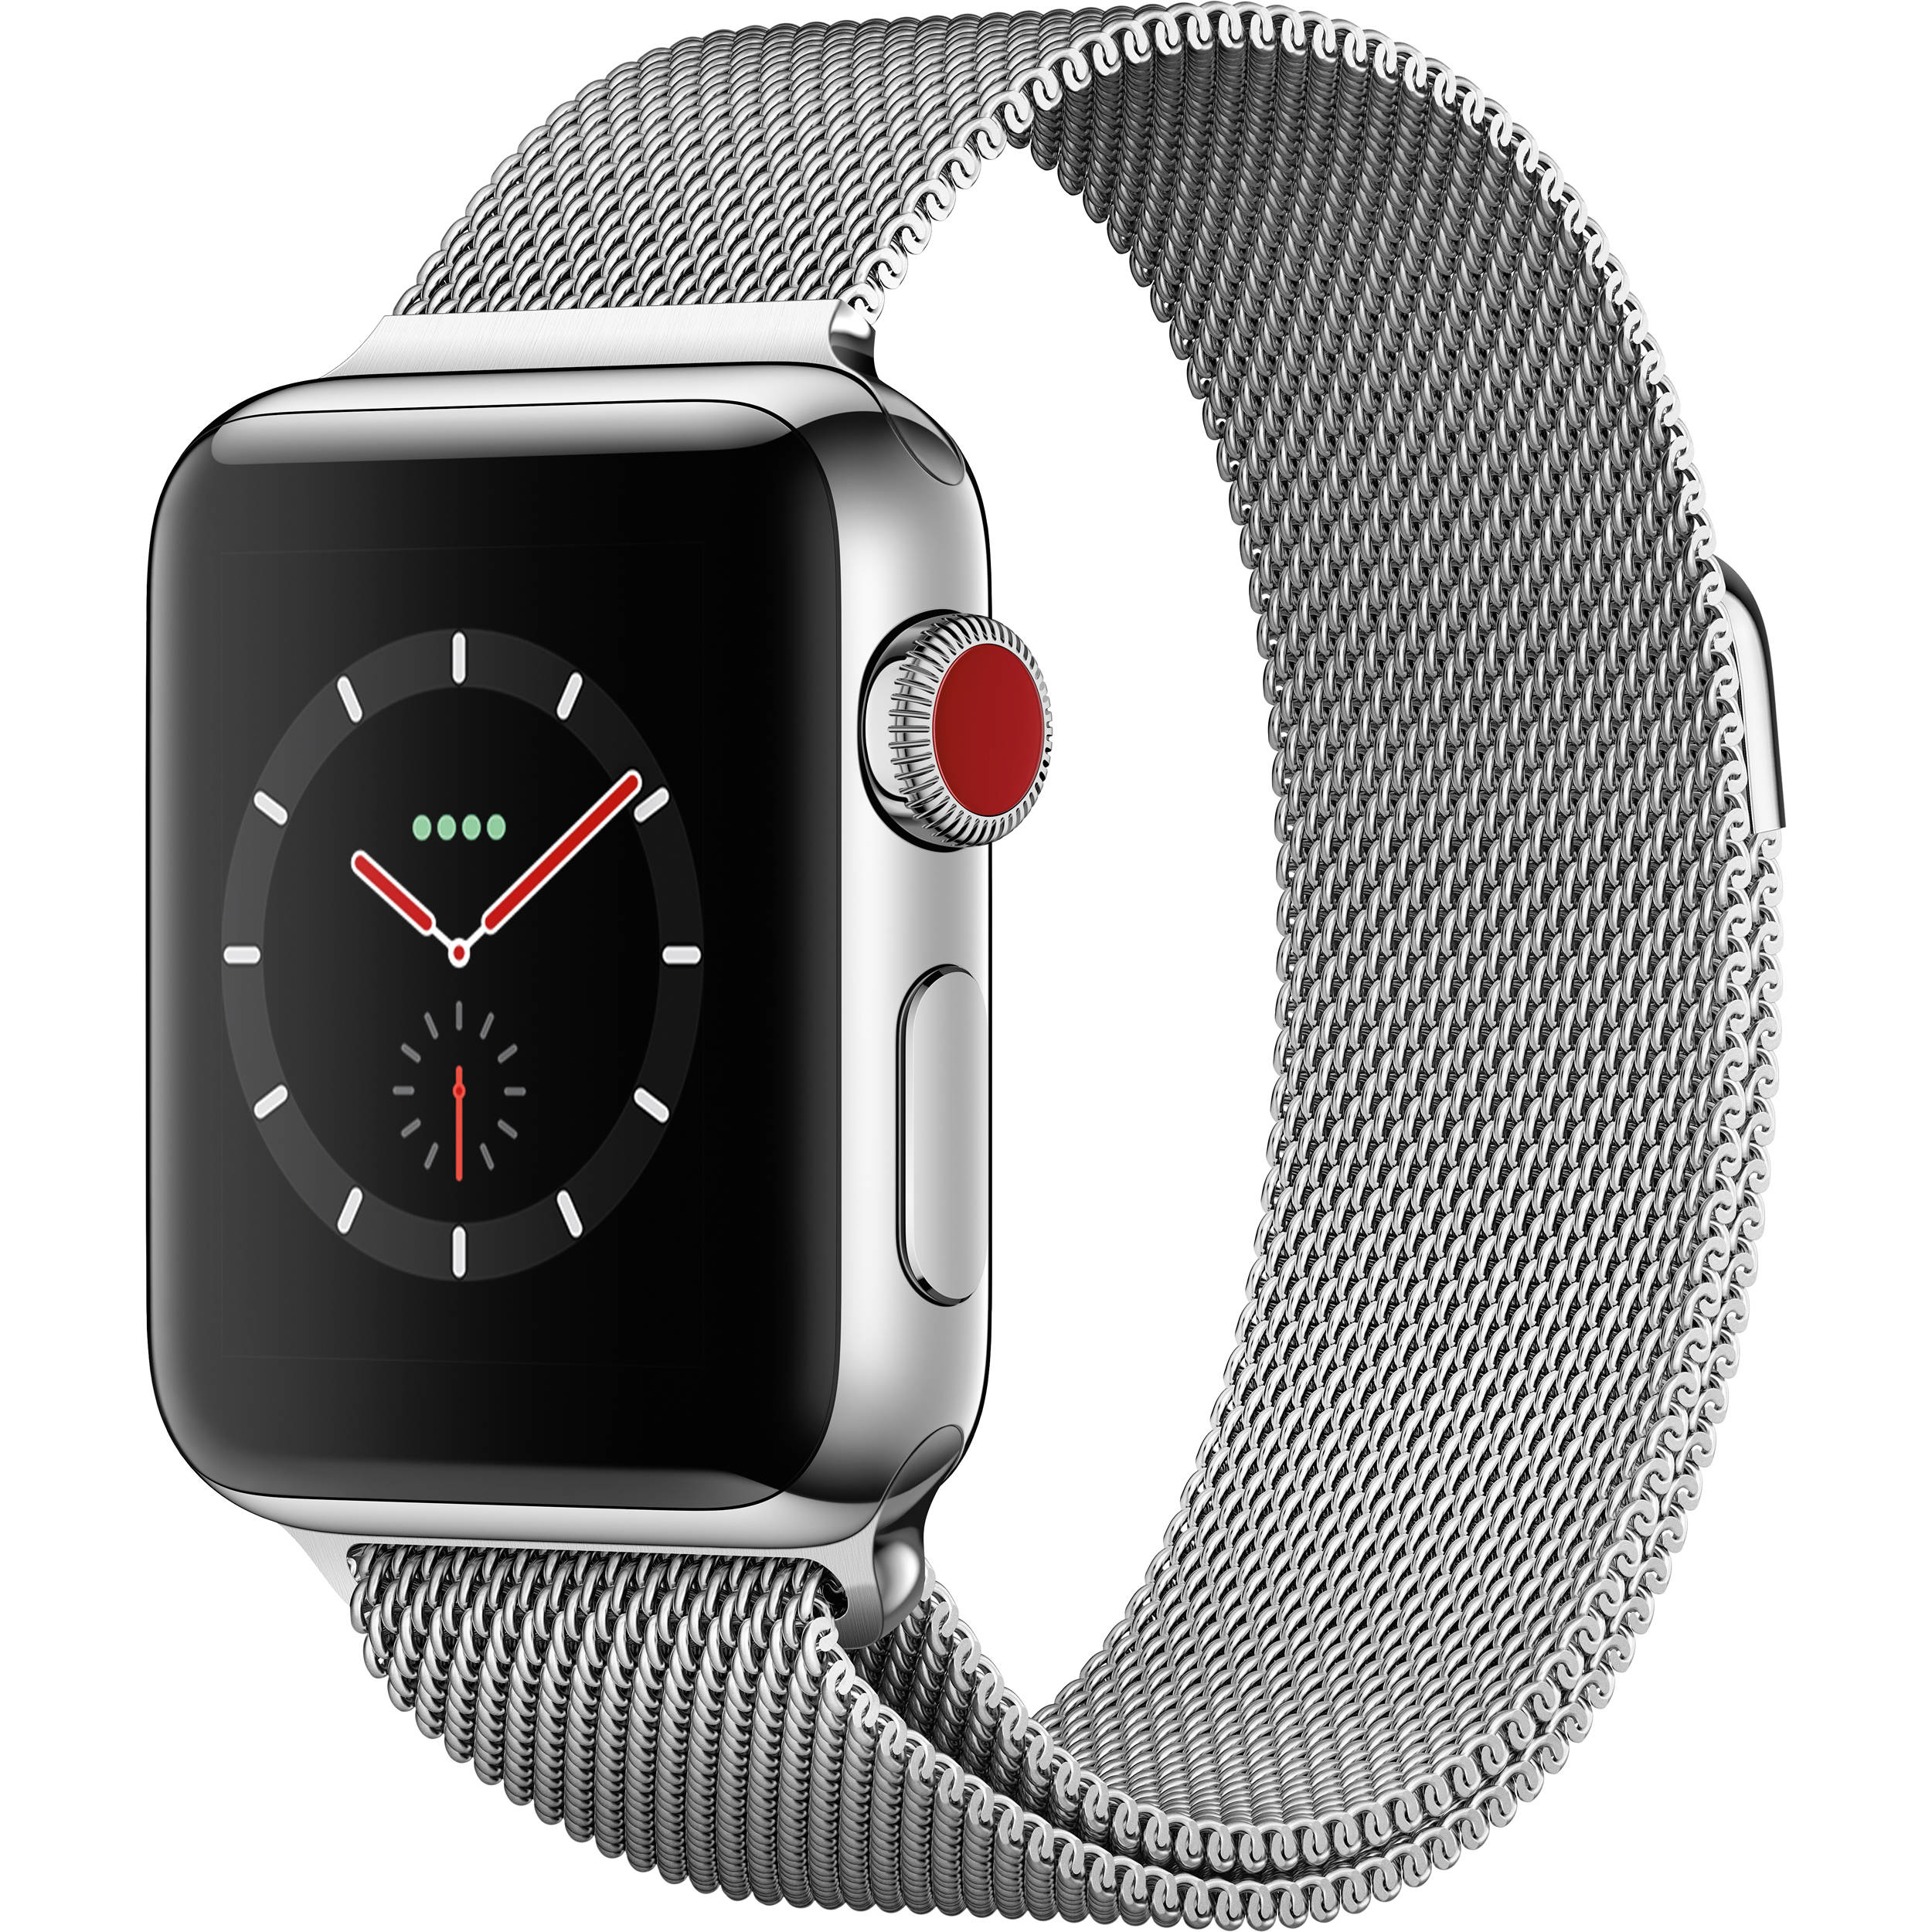 baseus apple watches priced loop for appnn milanese offers review photo lesser a watch